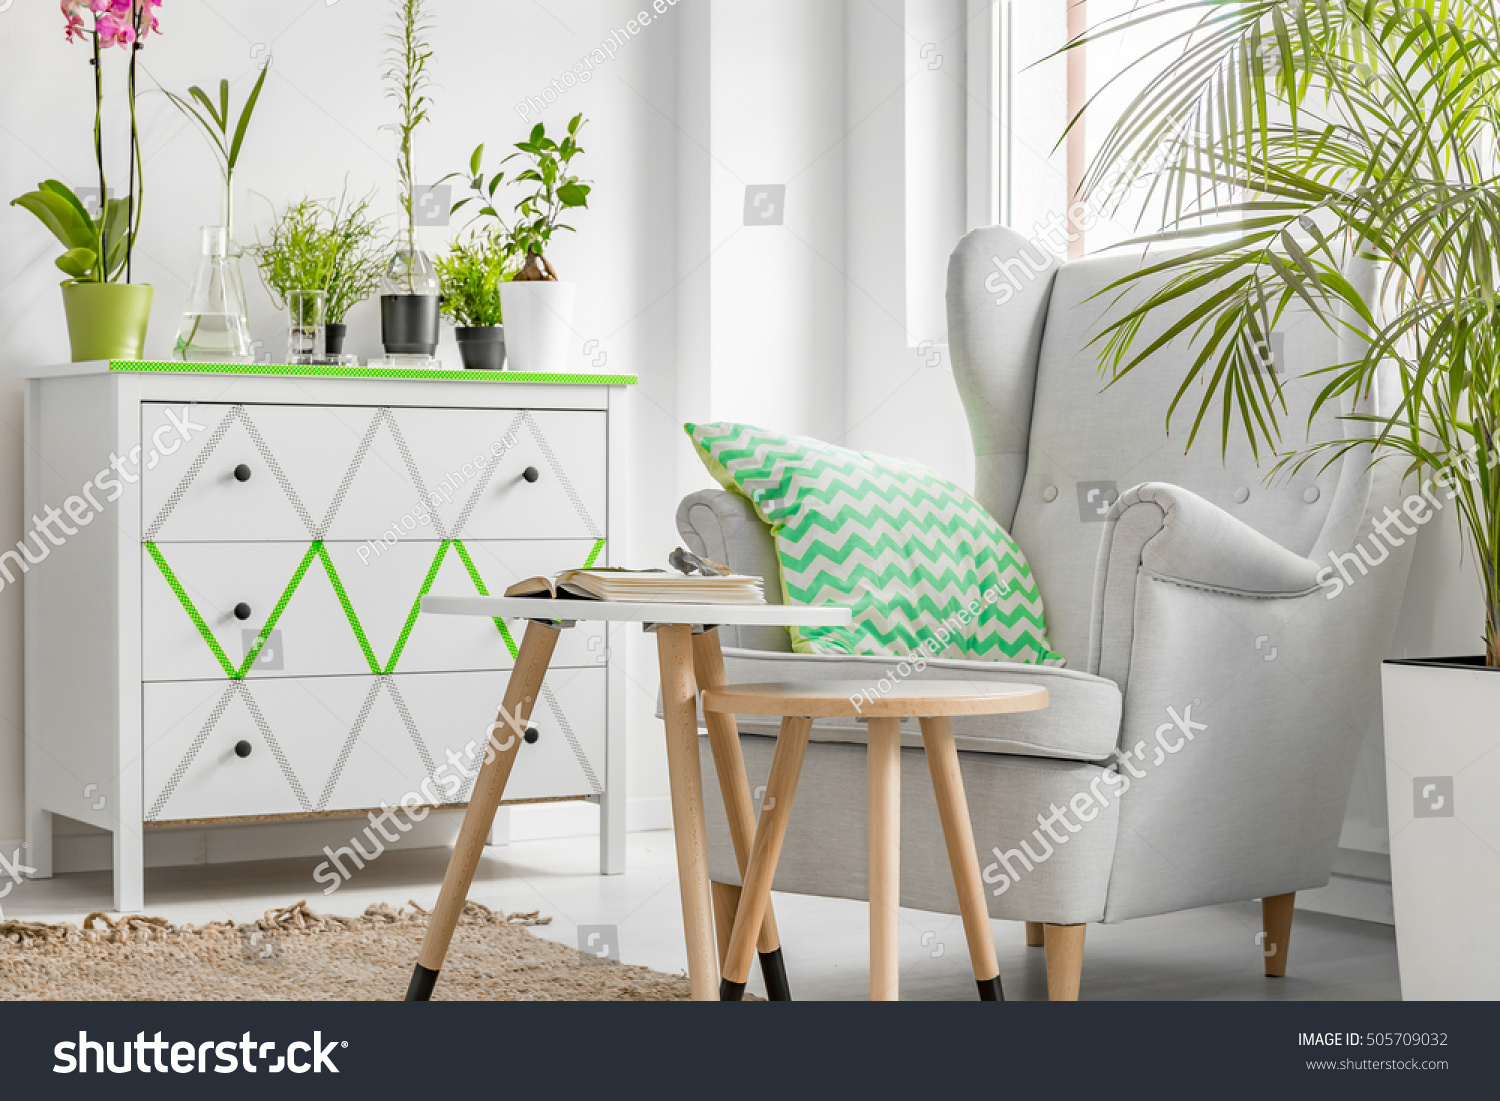 Room corner comfortable armchair wooden coffee stock photo room corner with comfortable armchair wooden coffee tables and plants geotapseo Gallery